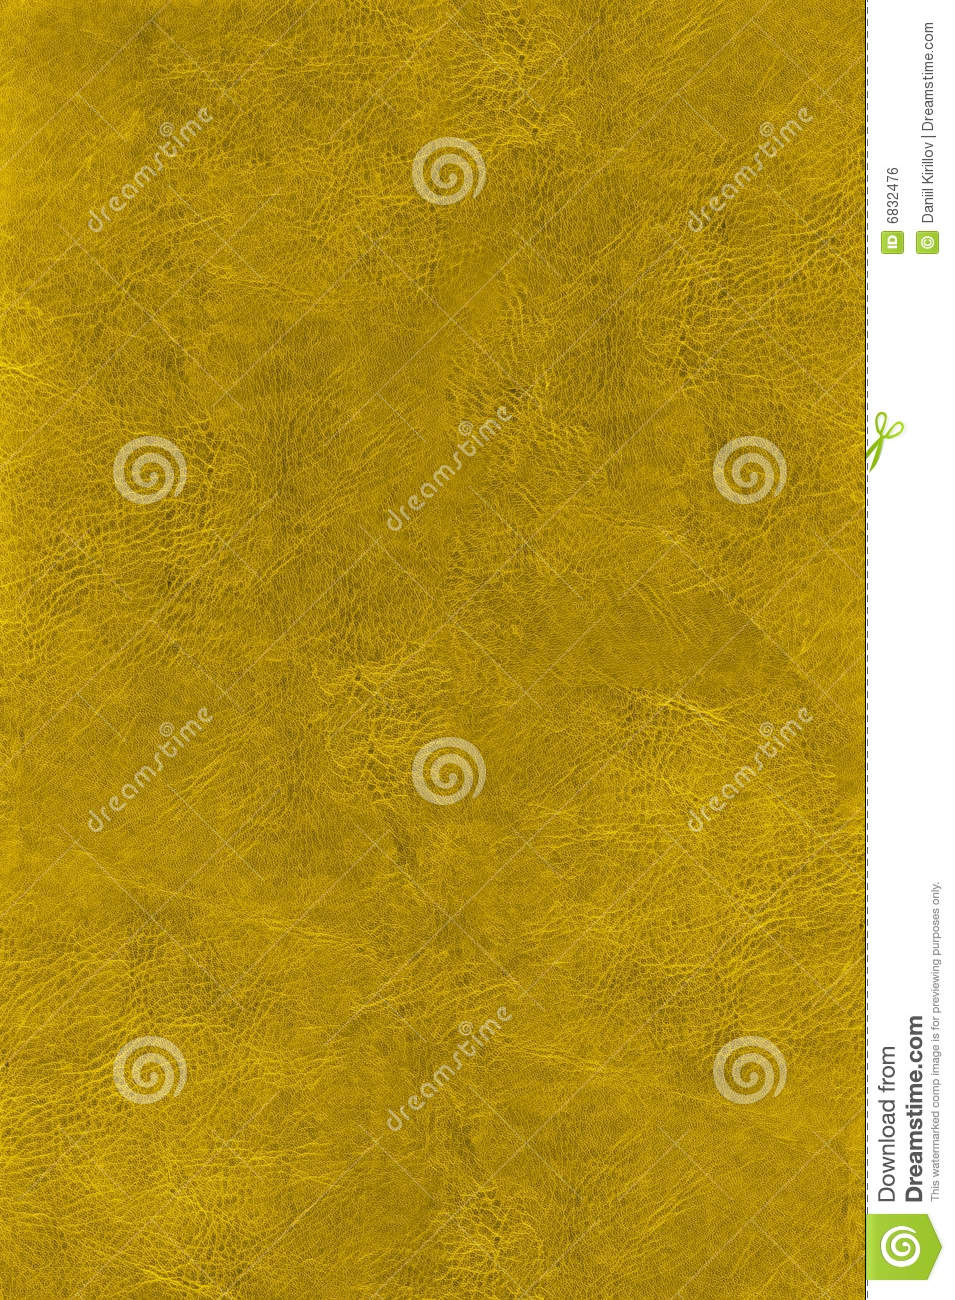 Natural gold leather texture